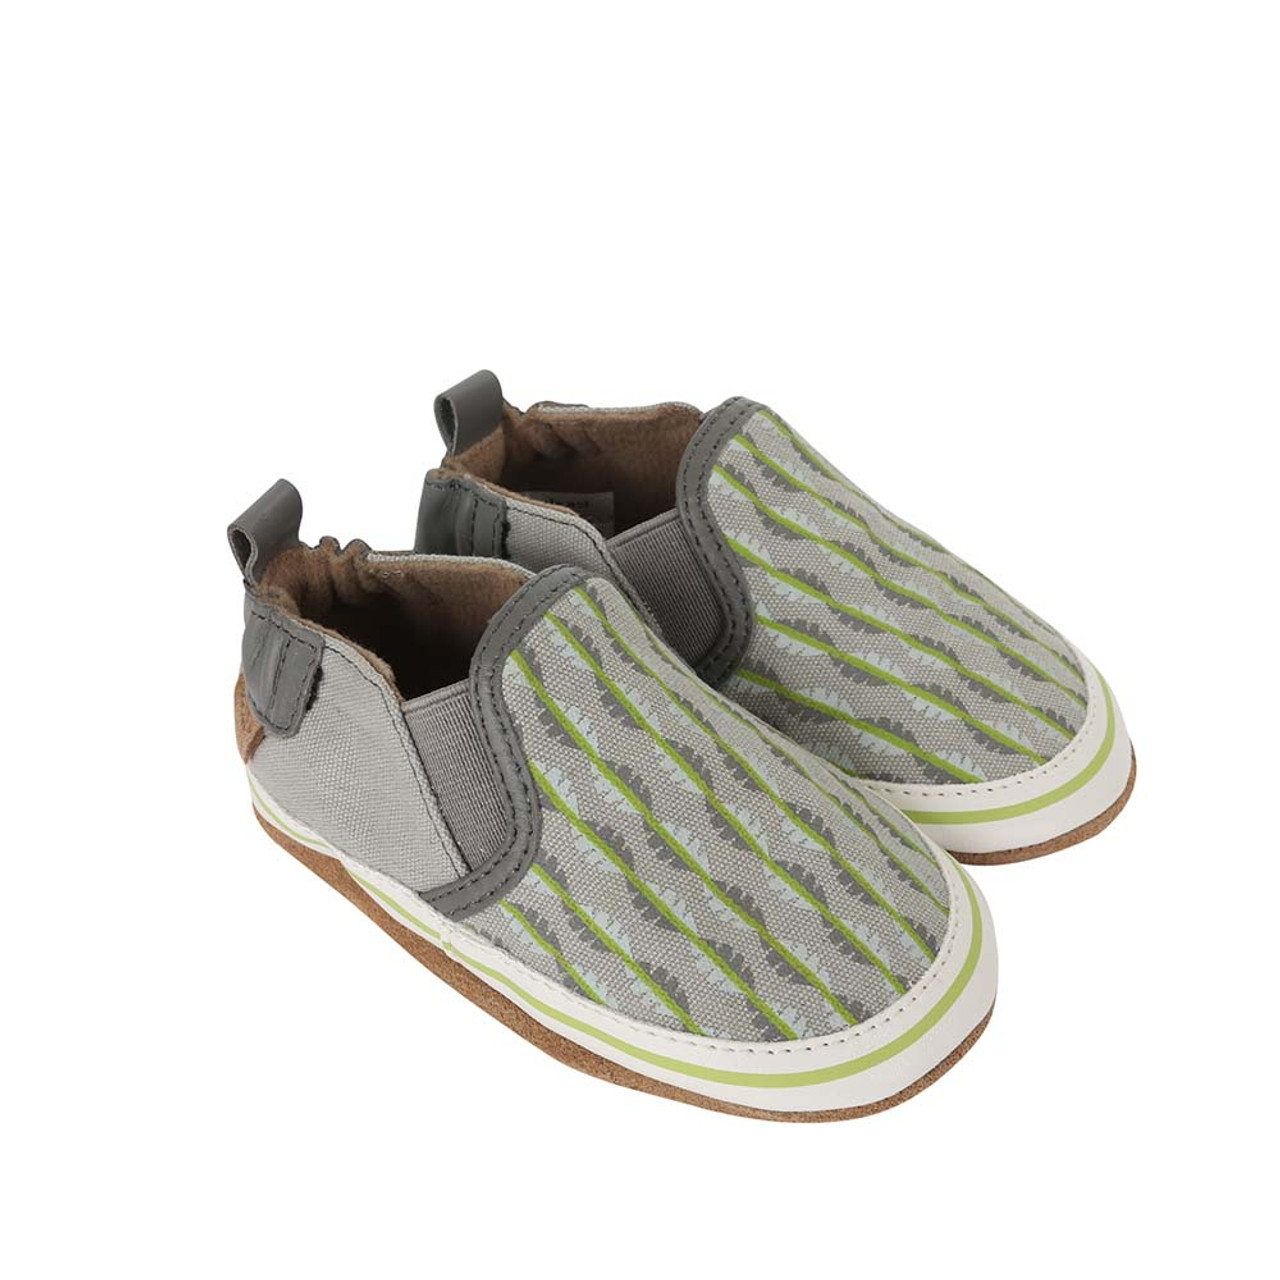 ceae56aac07ff1 Side view of Liam Tropical Baby shoes